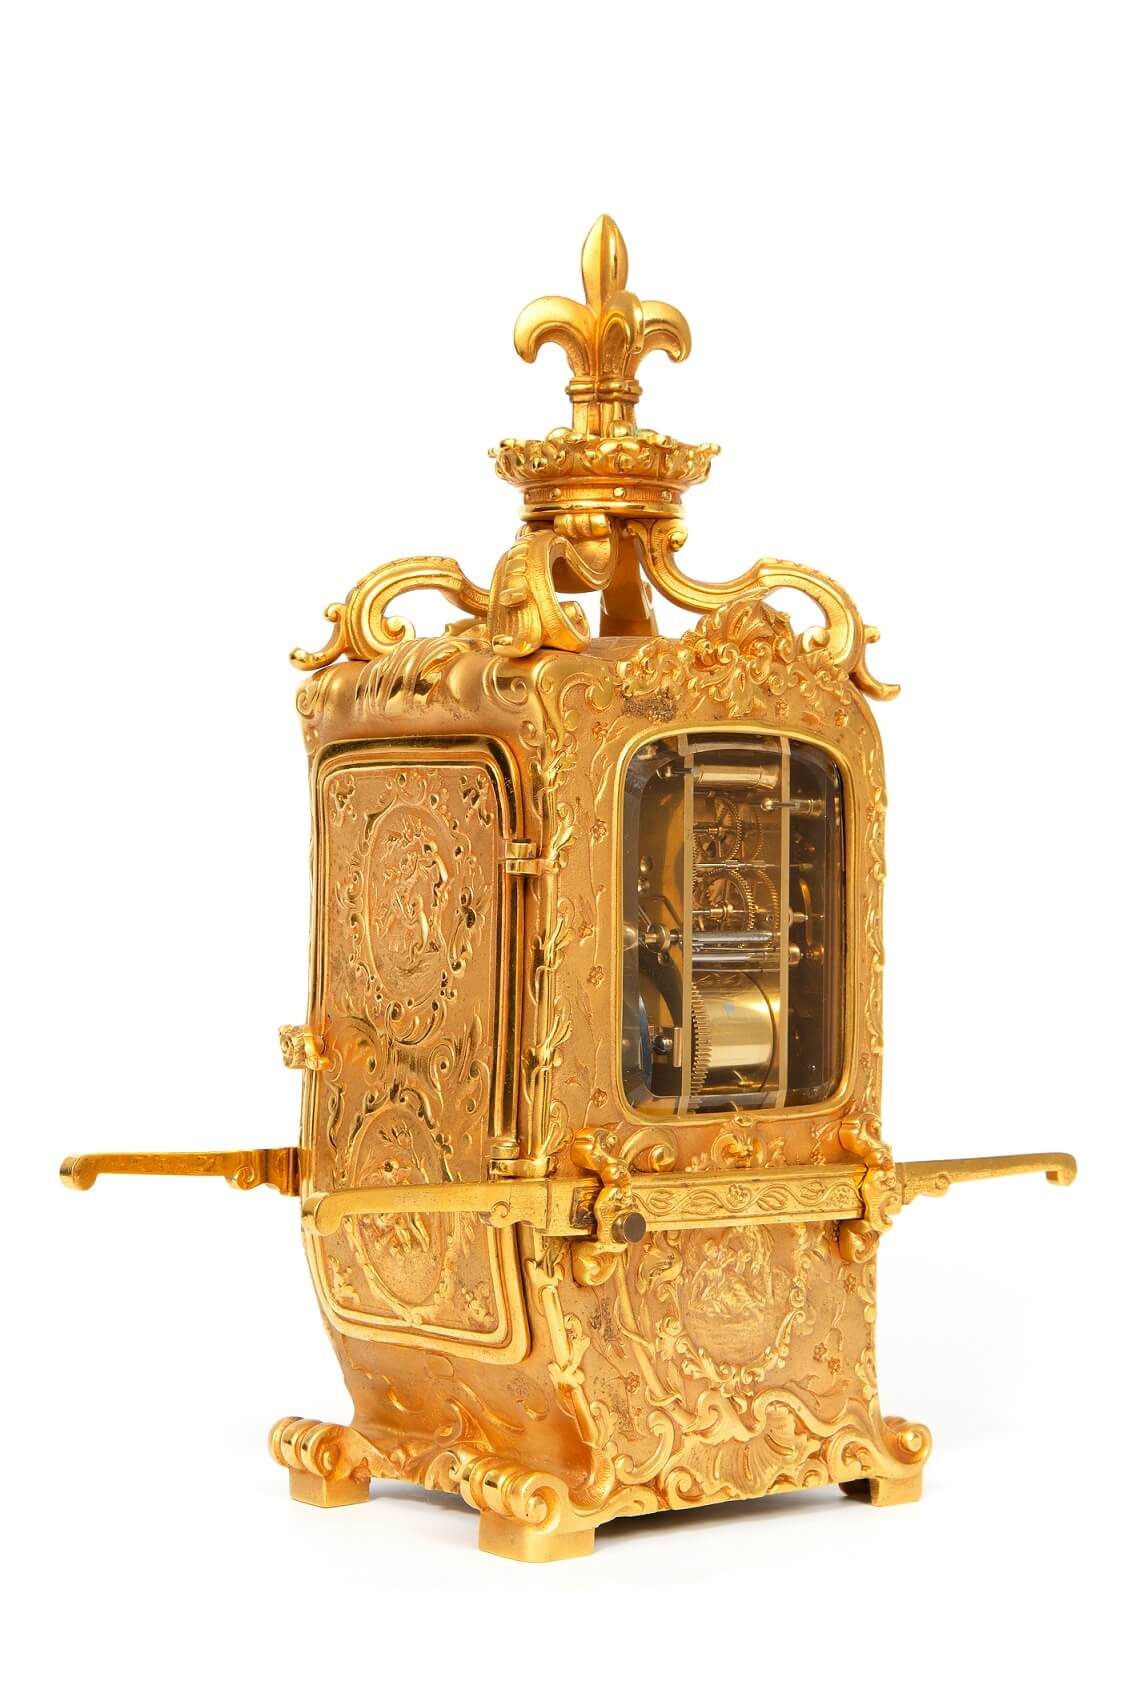 French-rococo-gilt-brass-sedan-carriage-antique-clock-striking-4